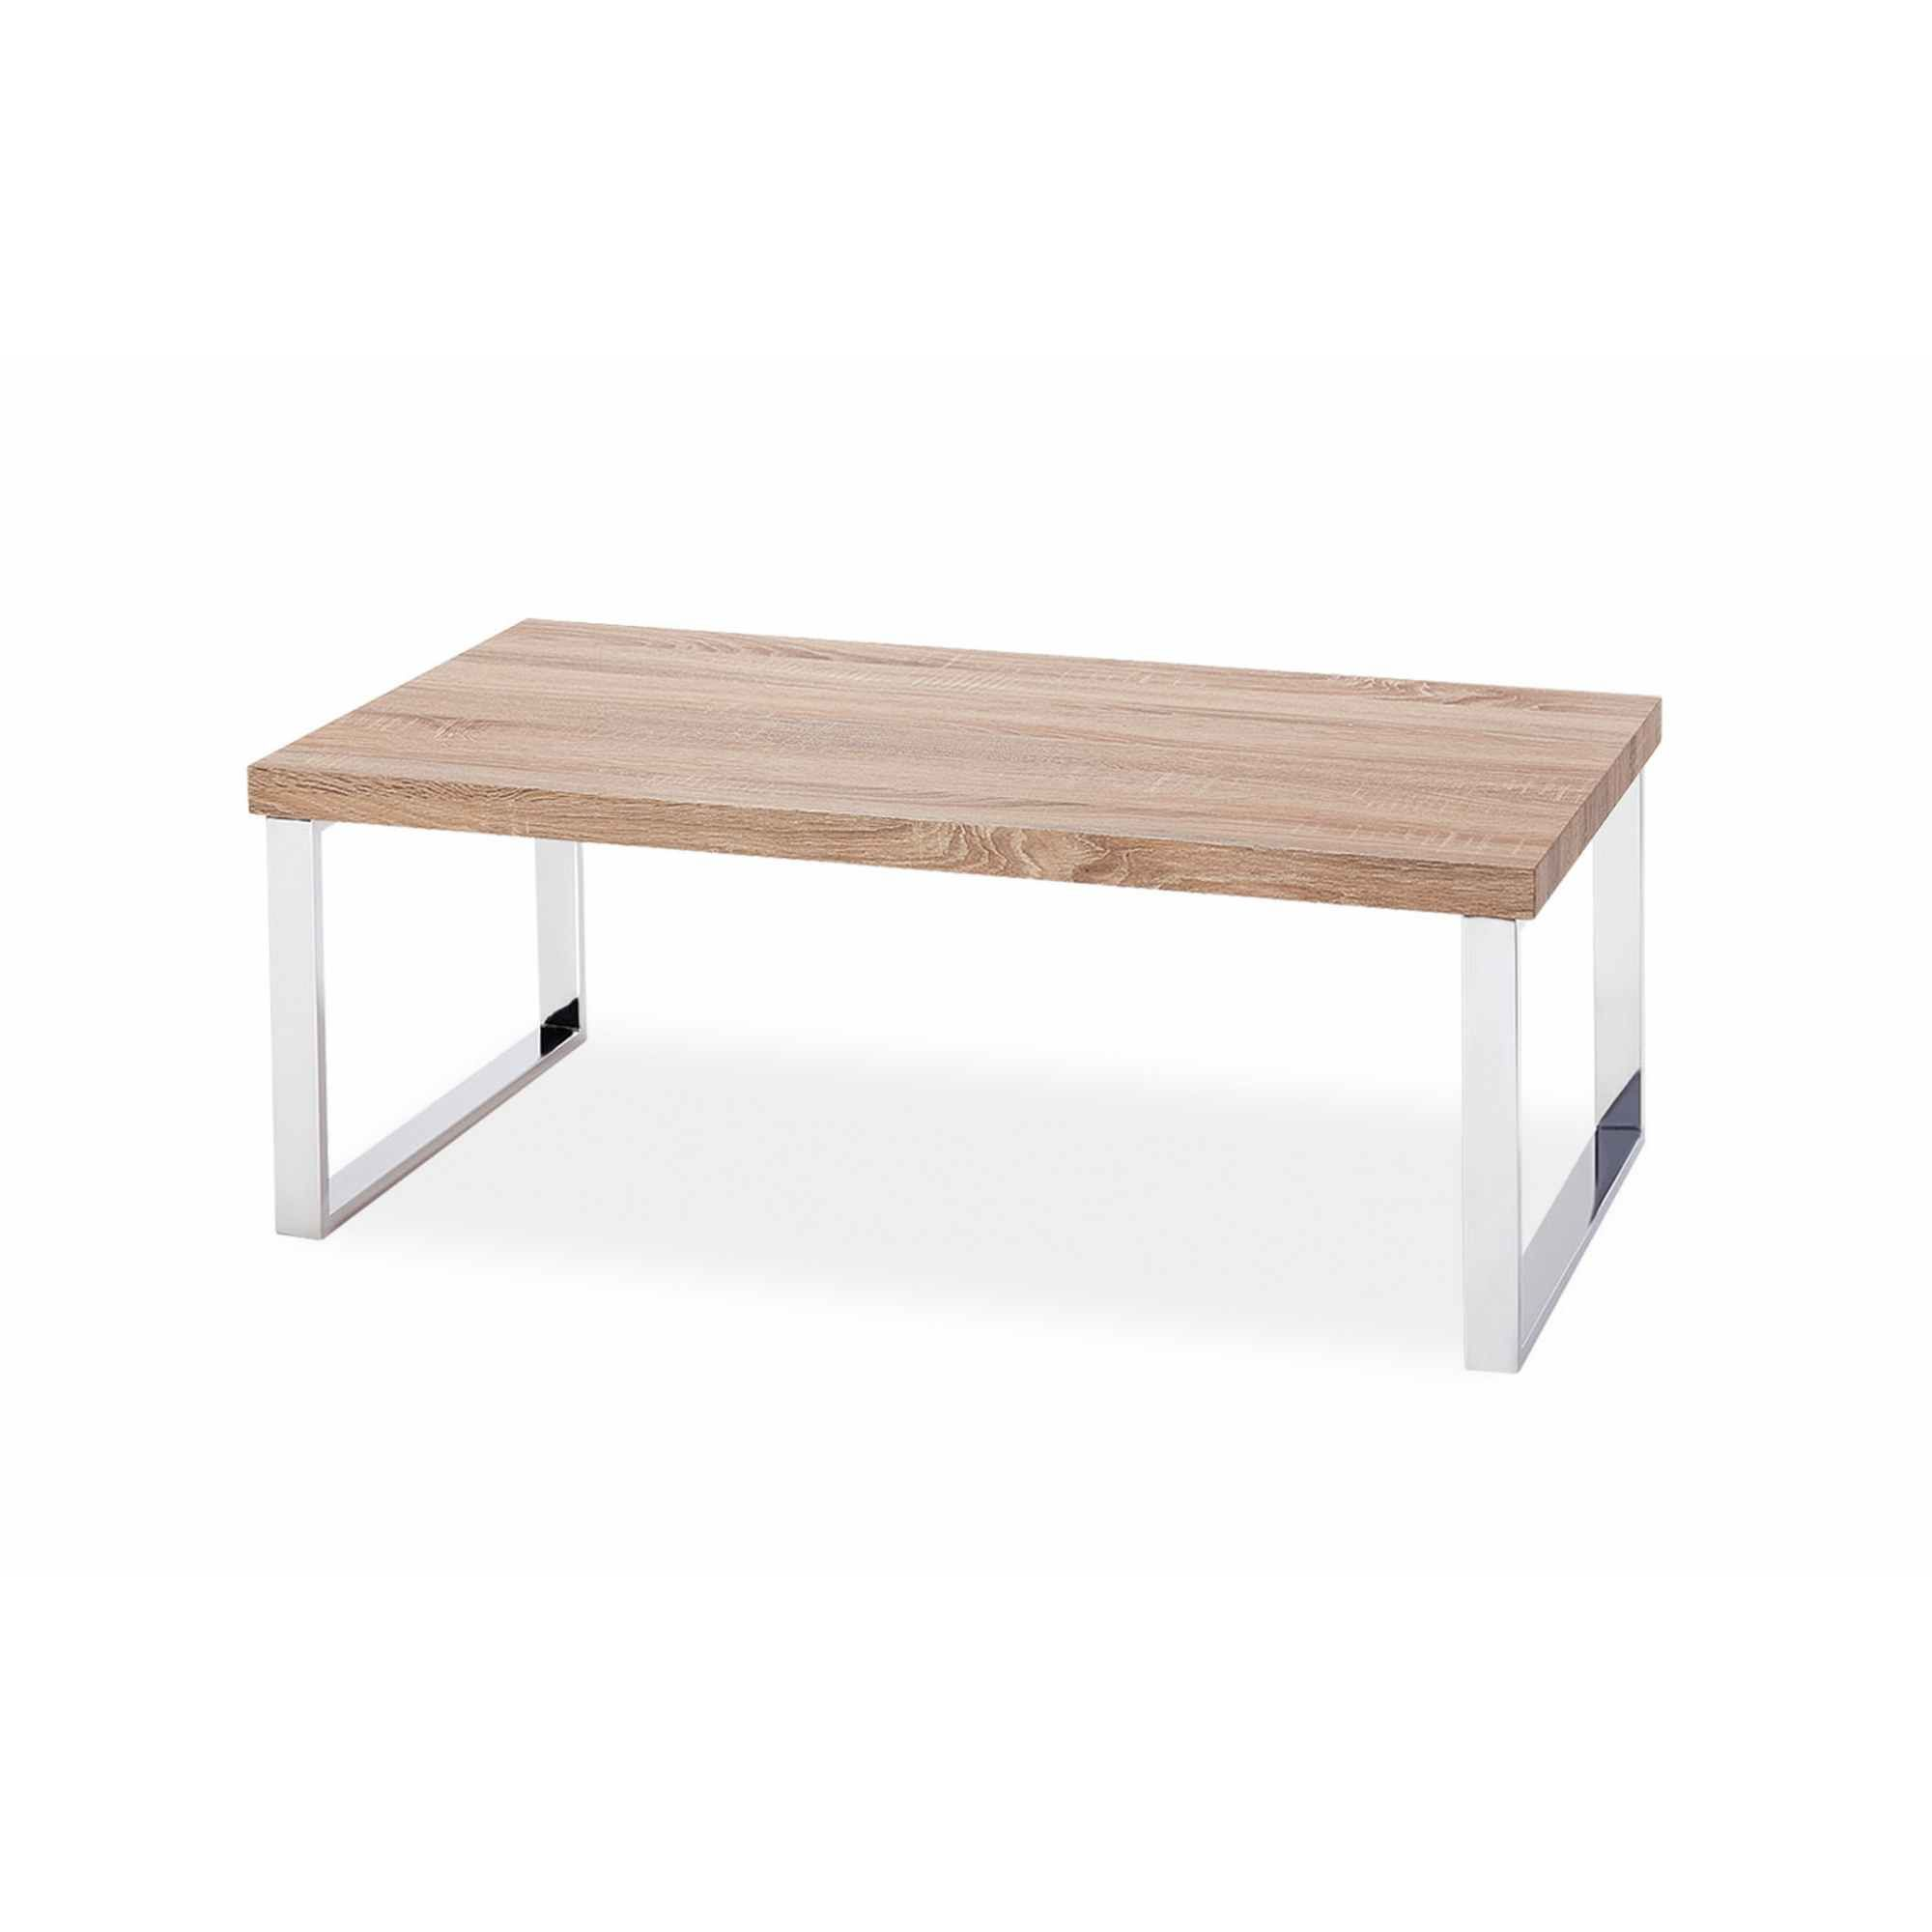 Table basse ronde blanc pied bois table basse ronde vente - Table ronde telescopique ...